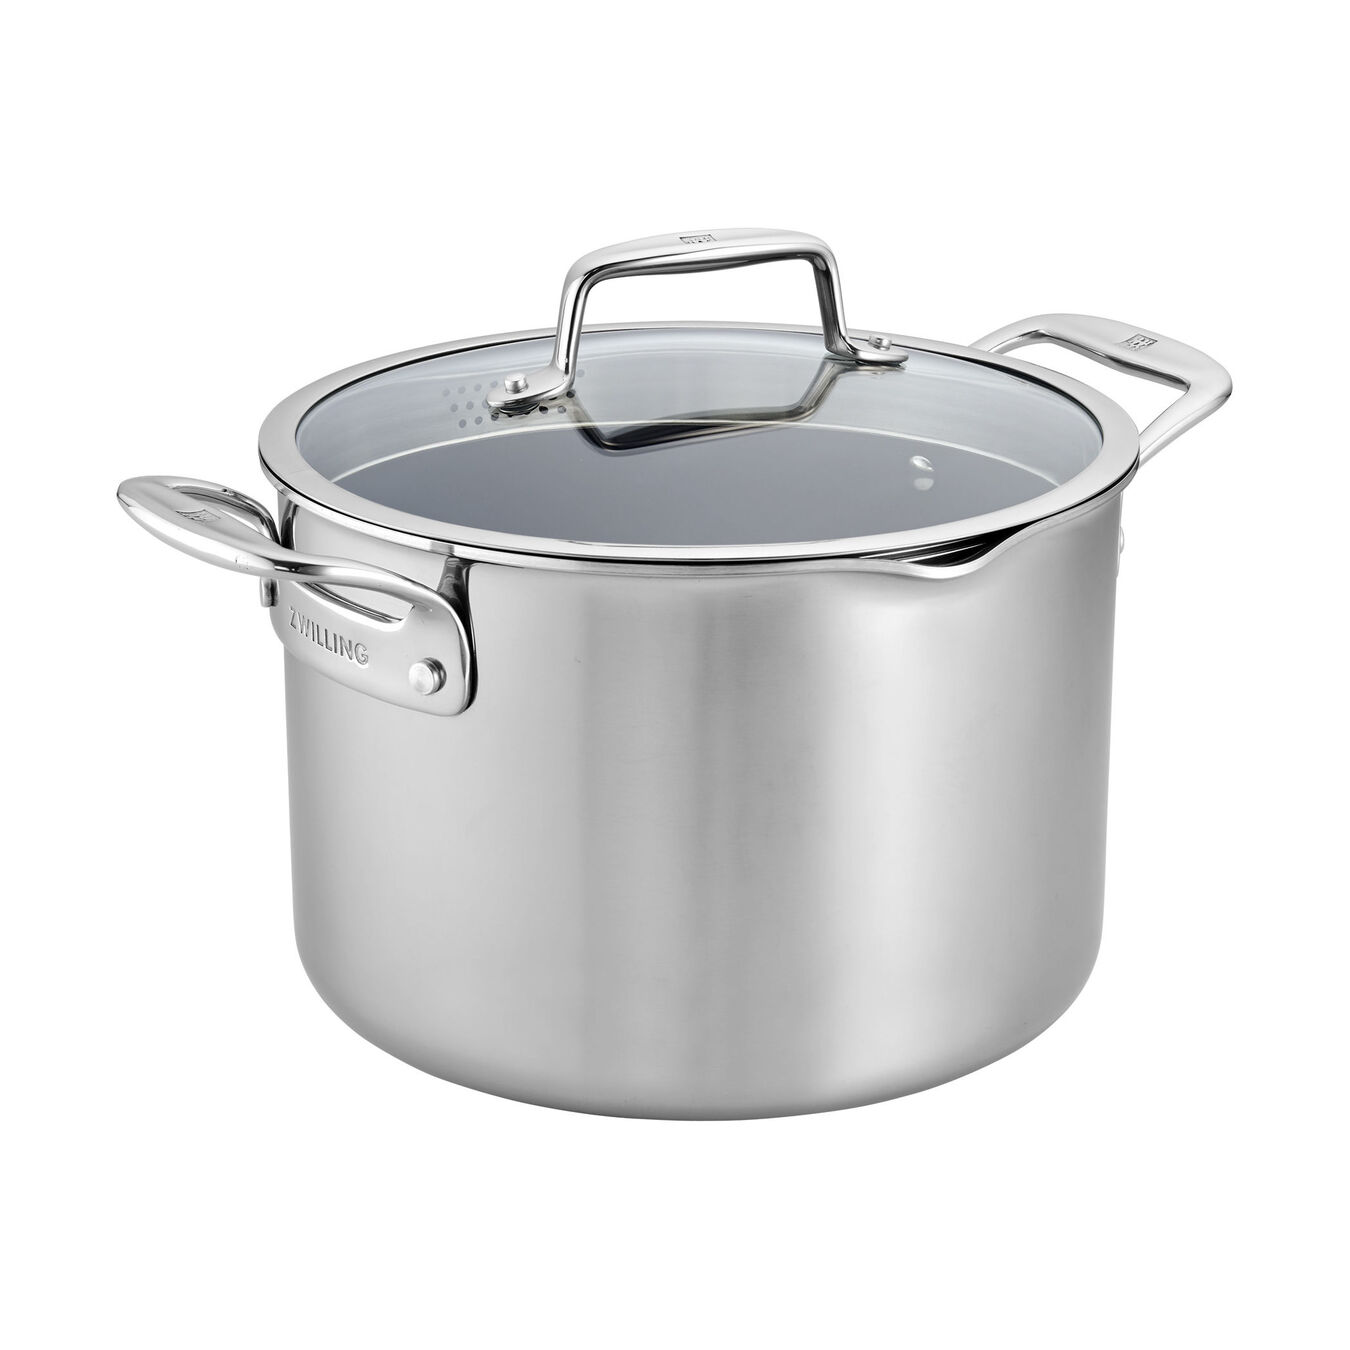 8 qt, Ceramic, Non-stick, Stainless Steel Stock Pot,,large 1